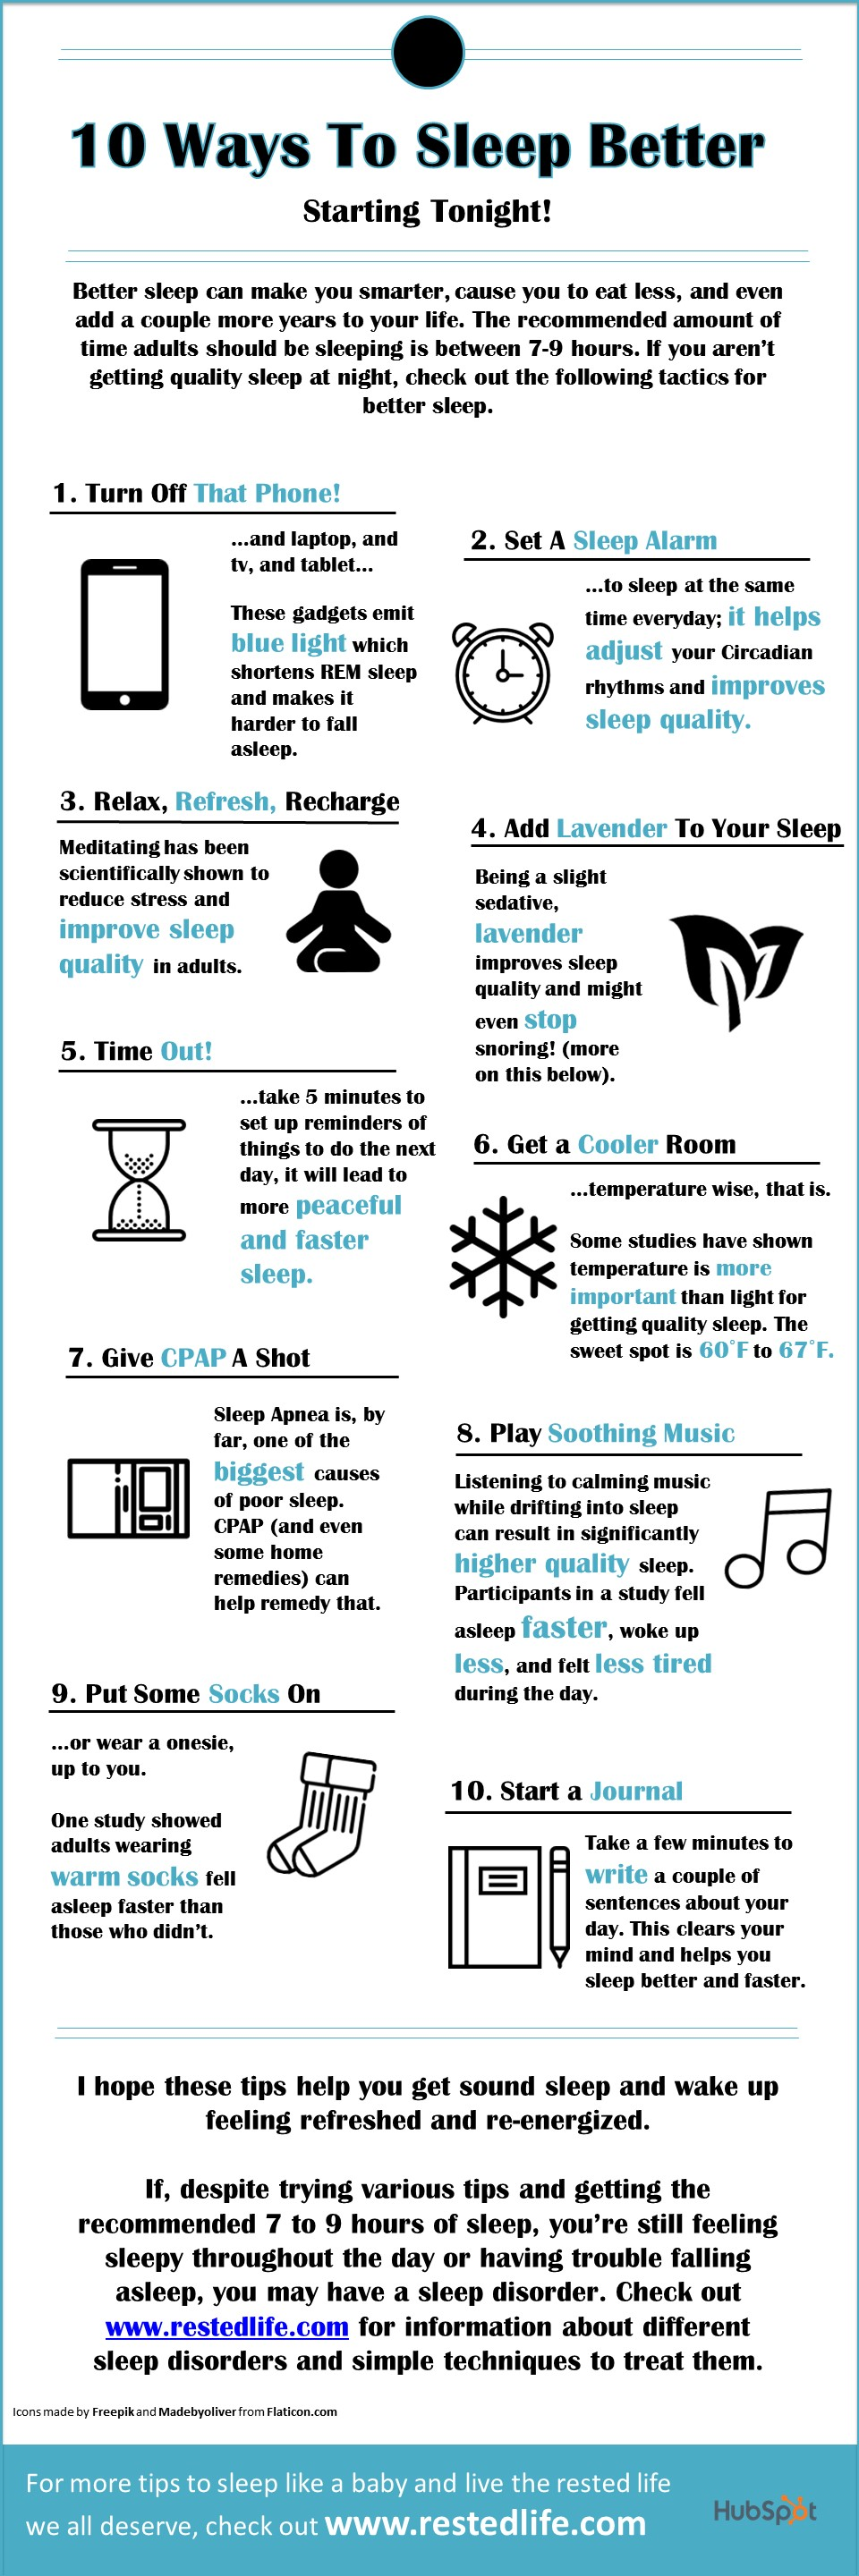 10 Ways To Sleep Better And Faster Starting Today Infographic